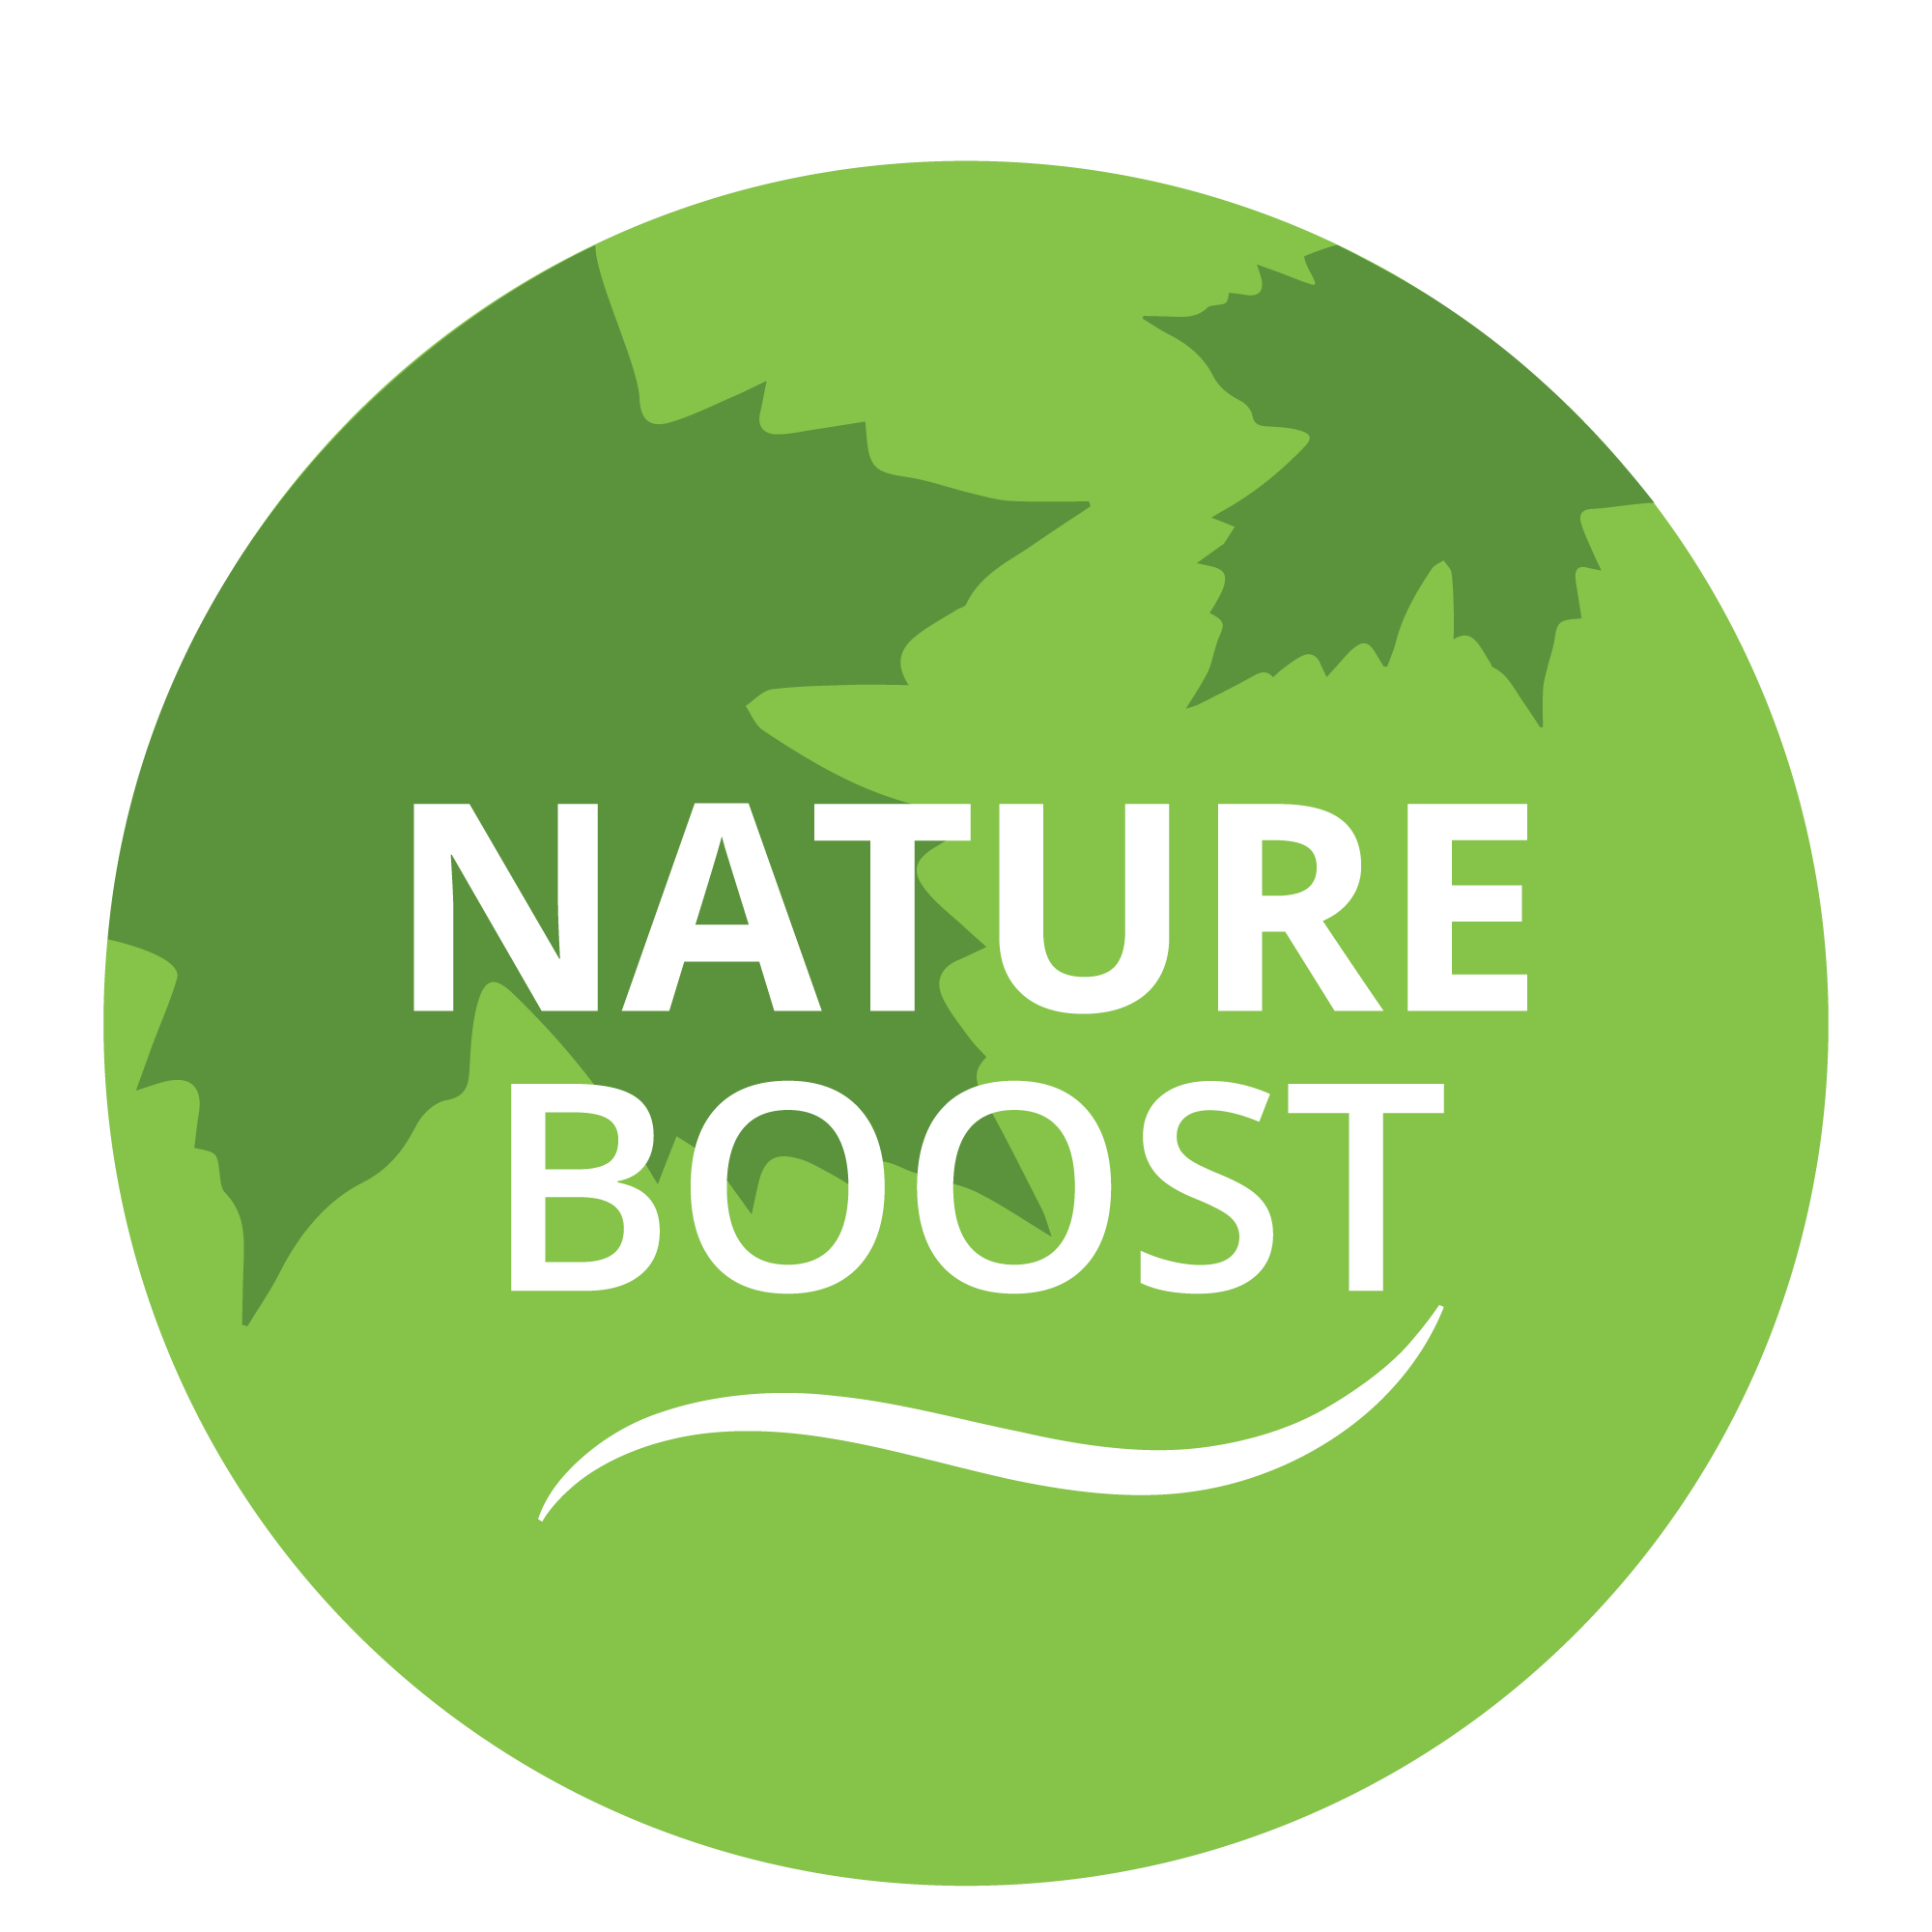 positive-icons-natureboost